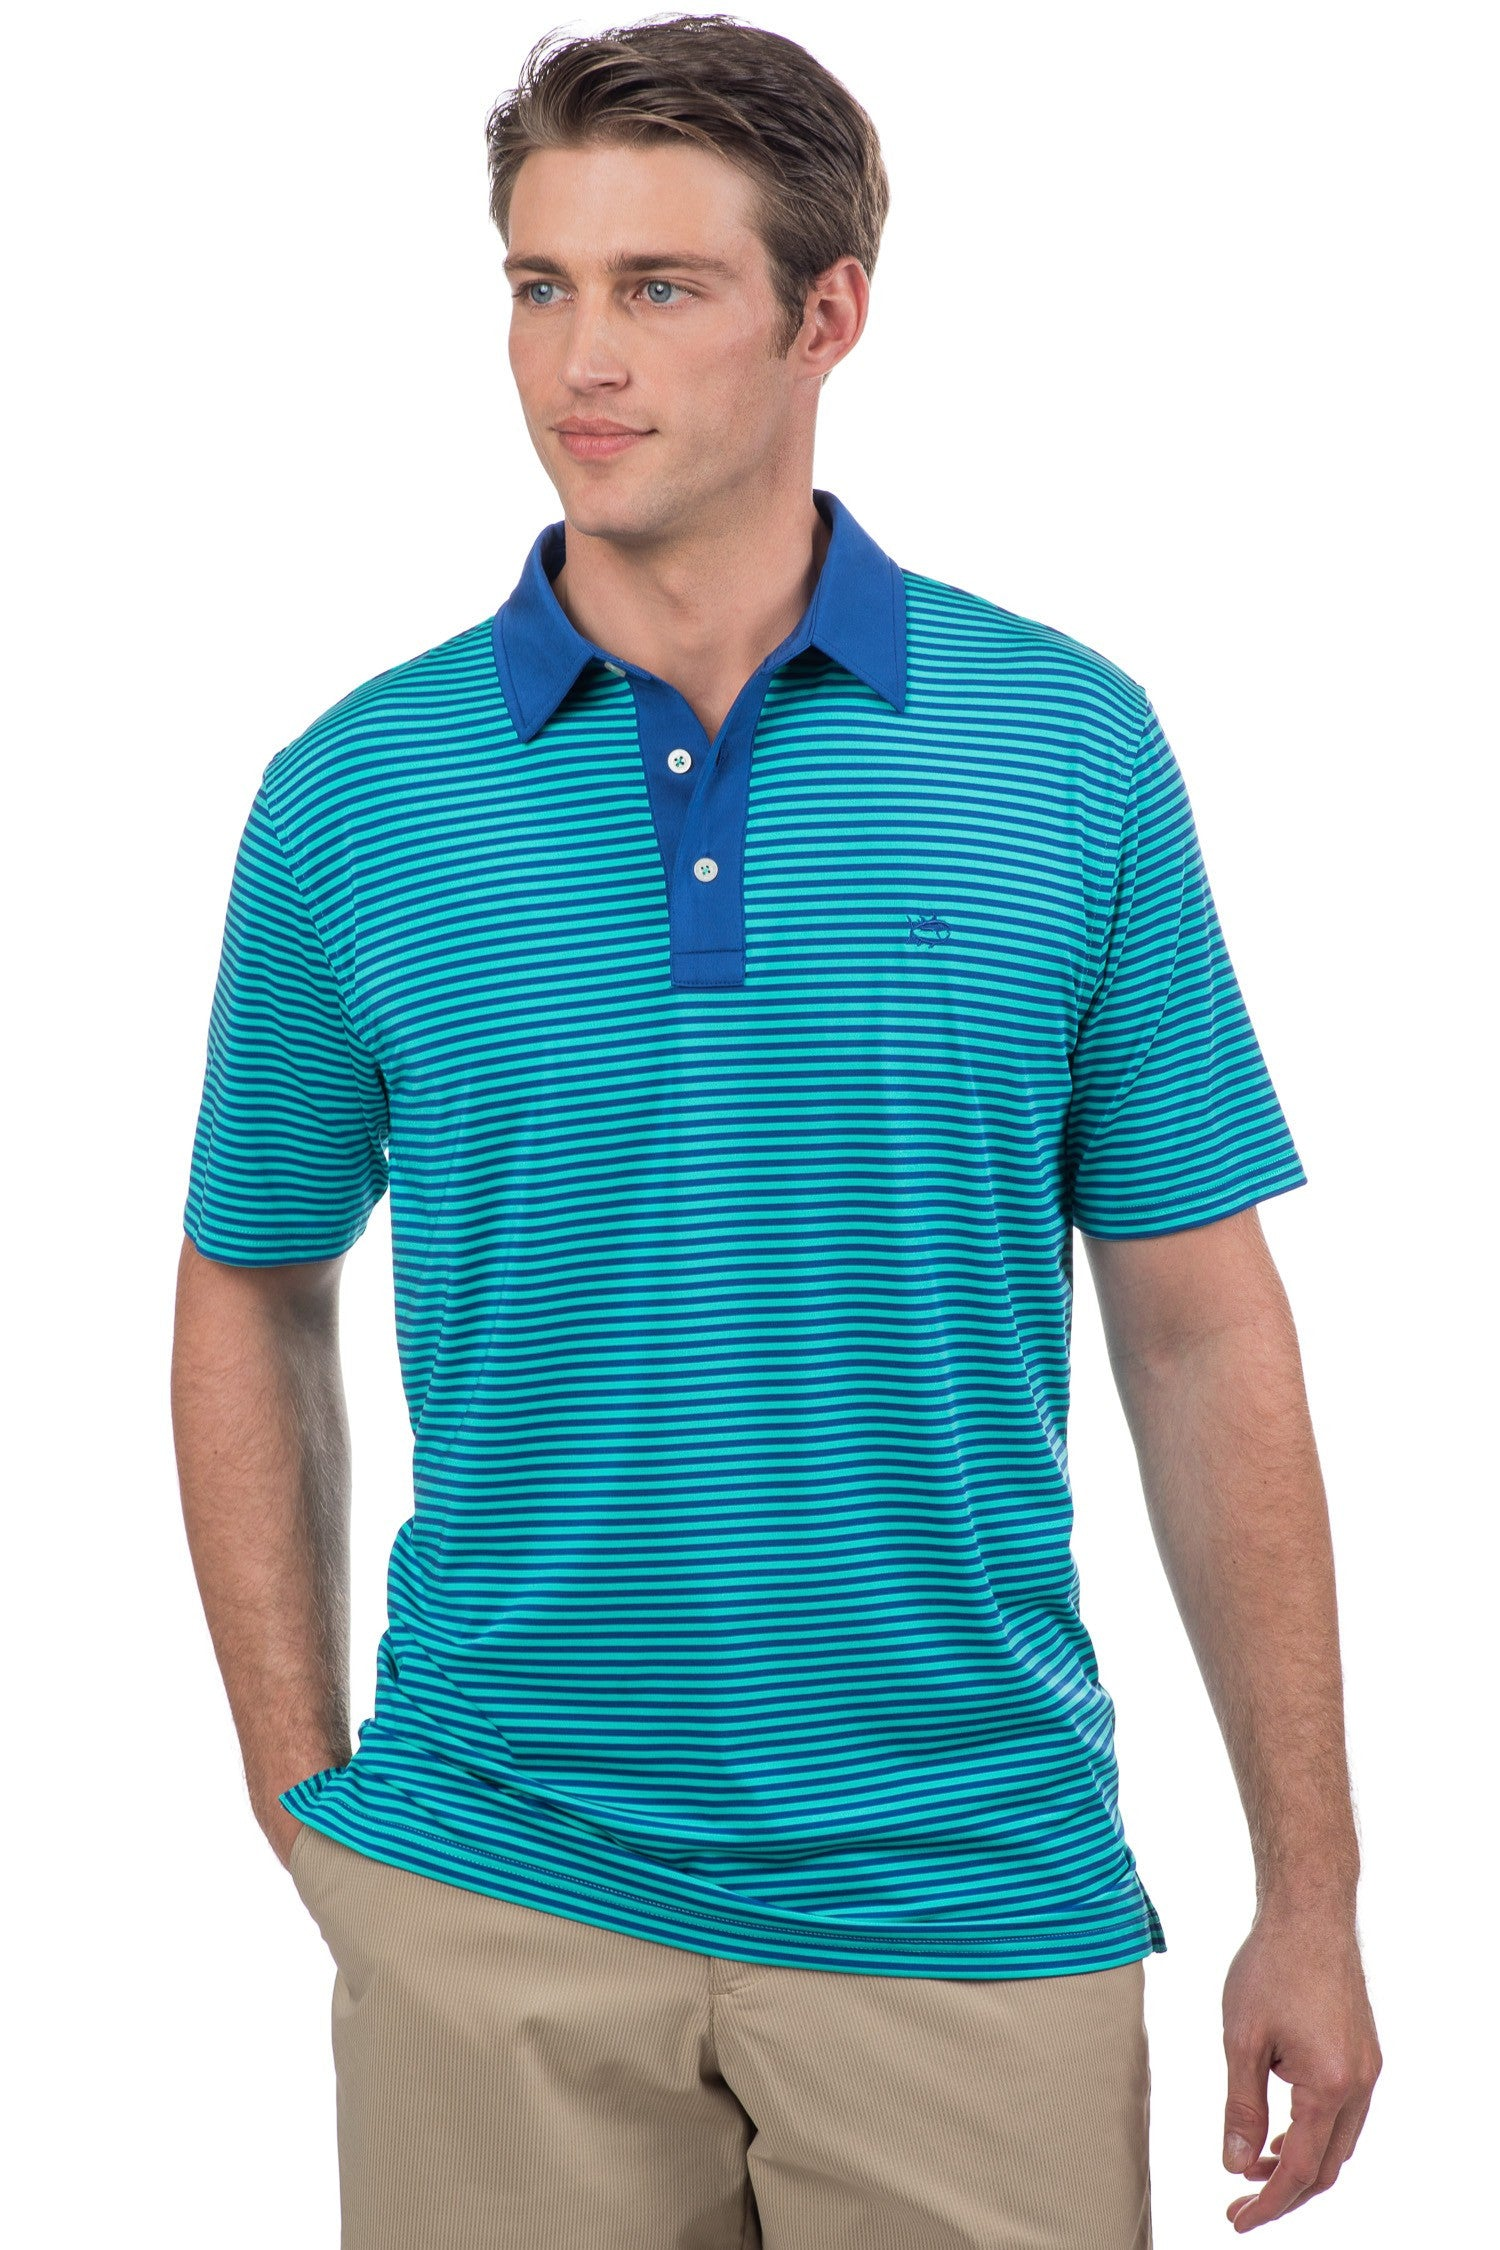 Southern Tide Game Set Match Stripe Performance Polo - Tropical Palm Front View